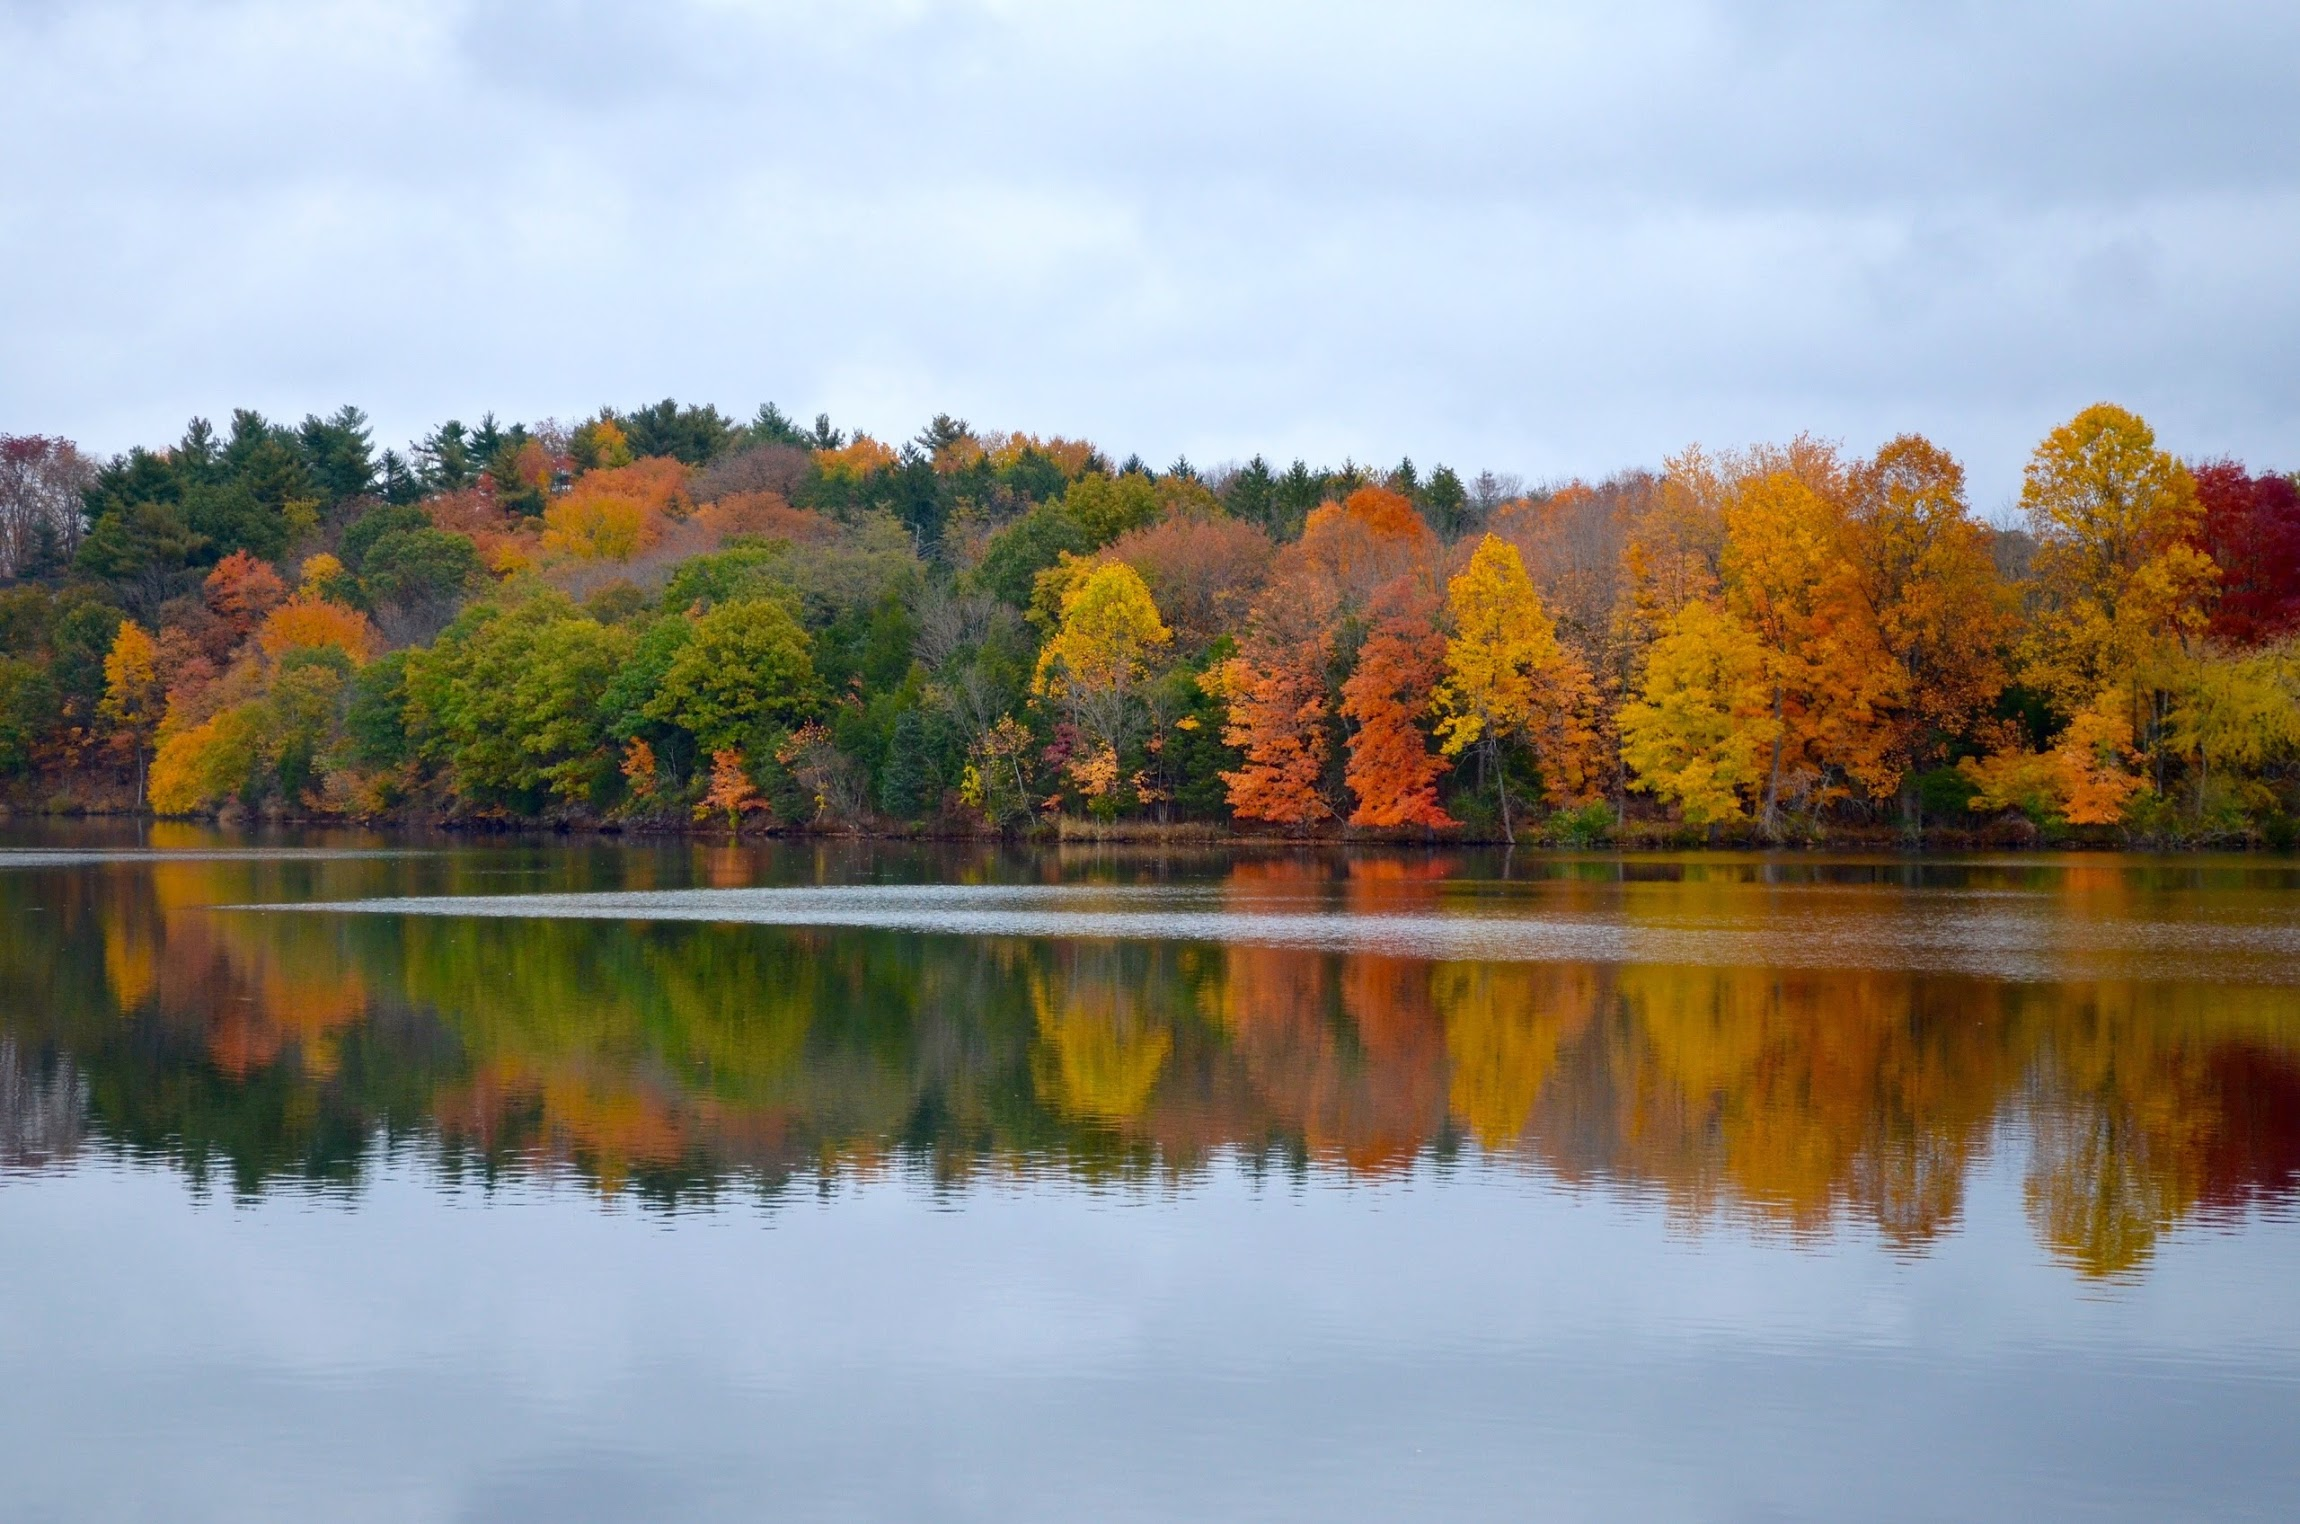 Colors are reflected at Green Lane Reservoir in Montgomery County. The ride passes through the park after Eichele Hill climb. Photo courtesy Janine Carroll.